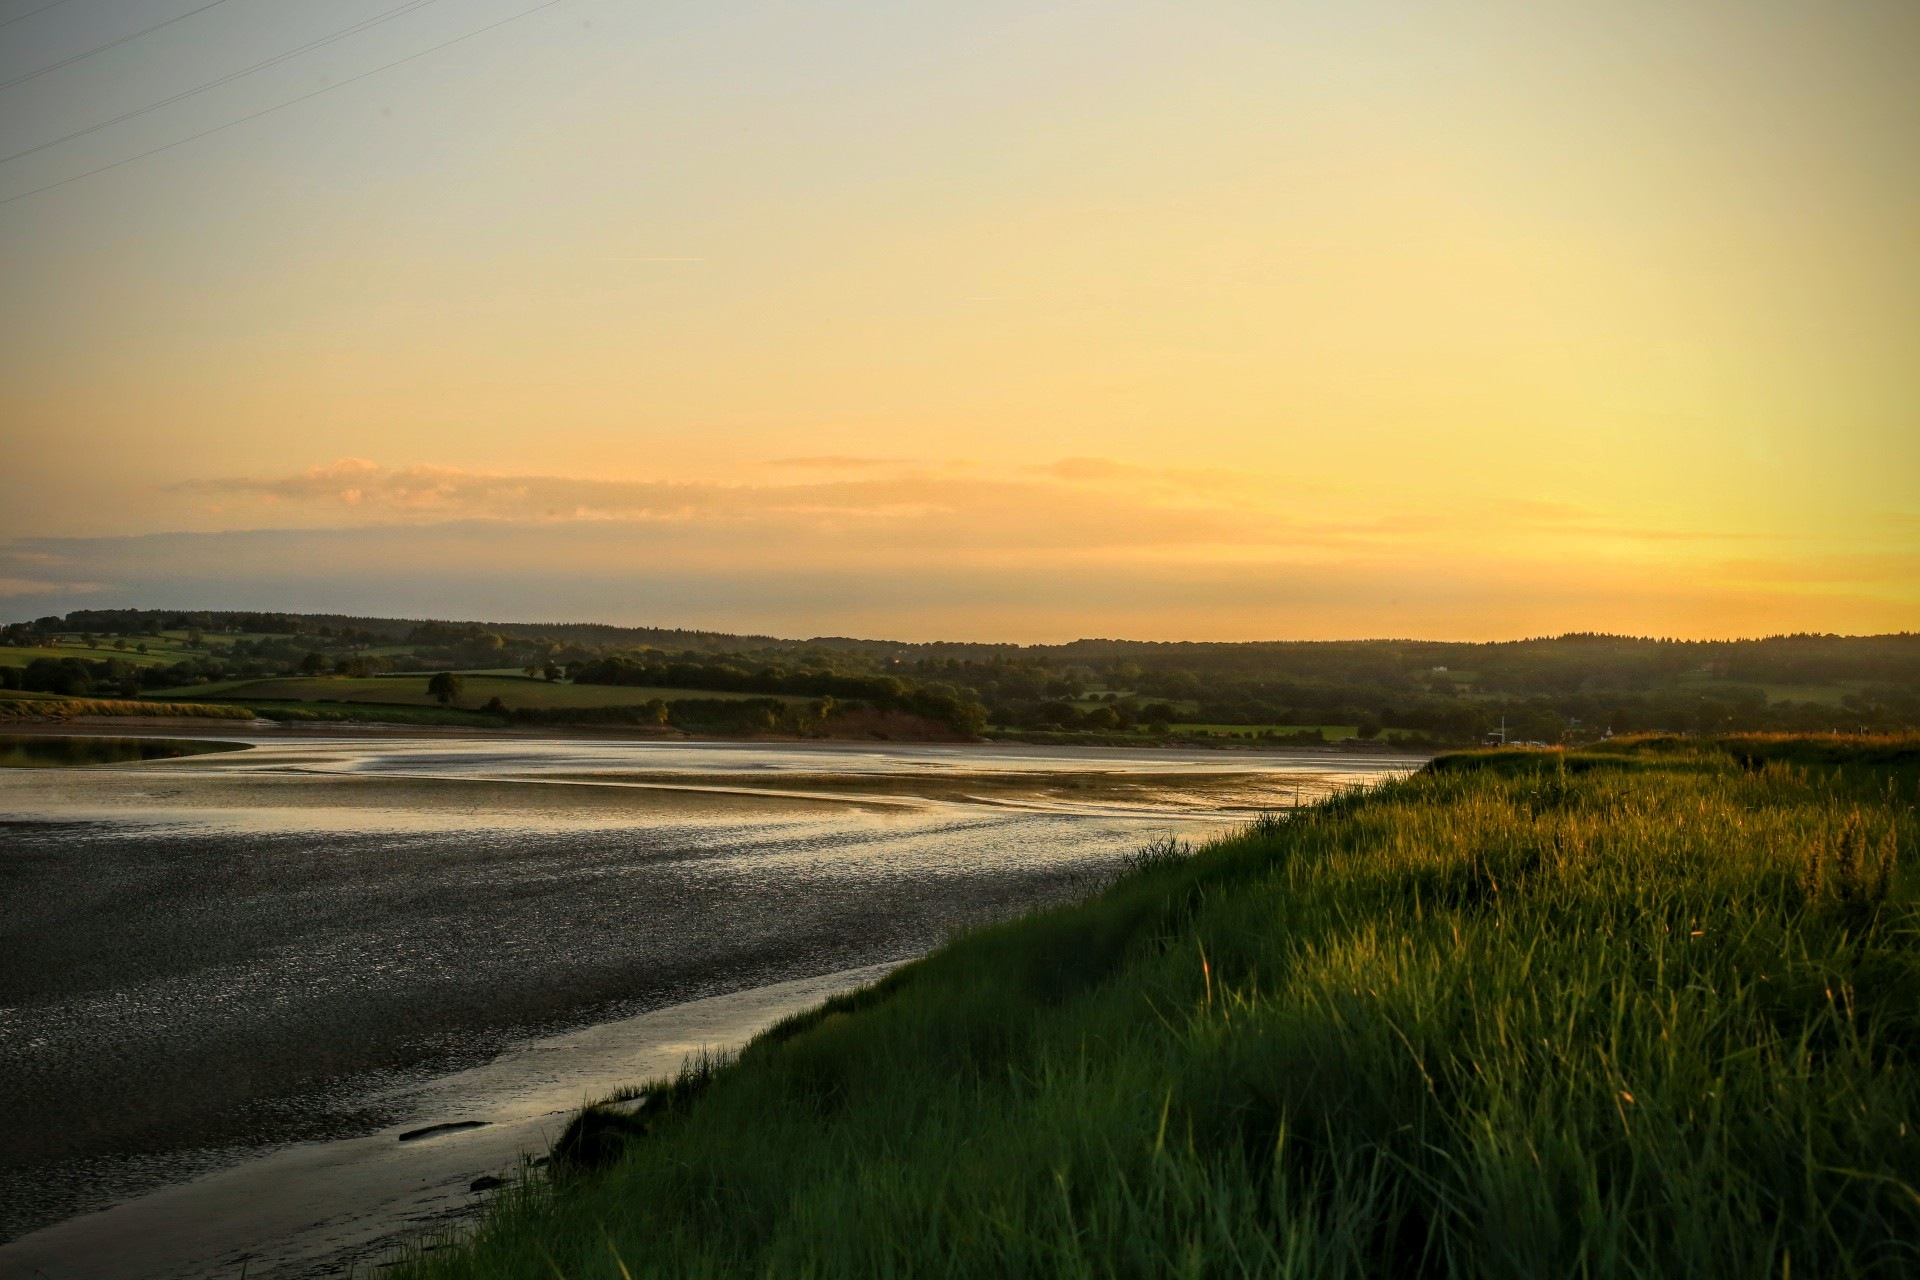 Evening on the River Severn by Yvonne Lewis